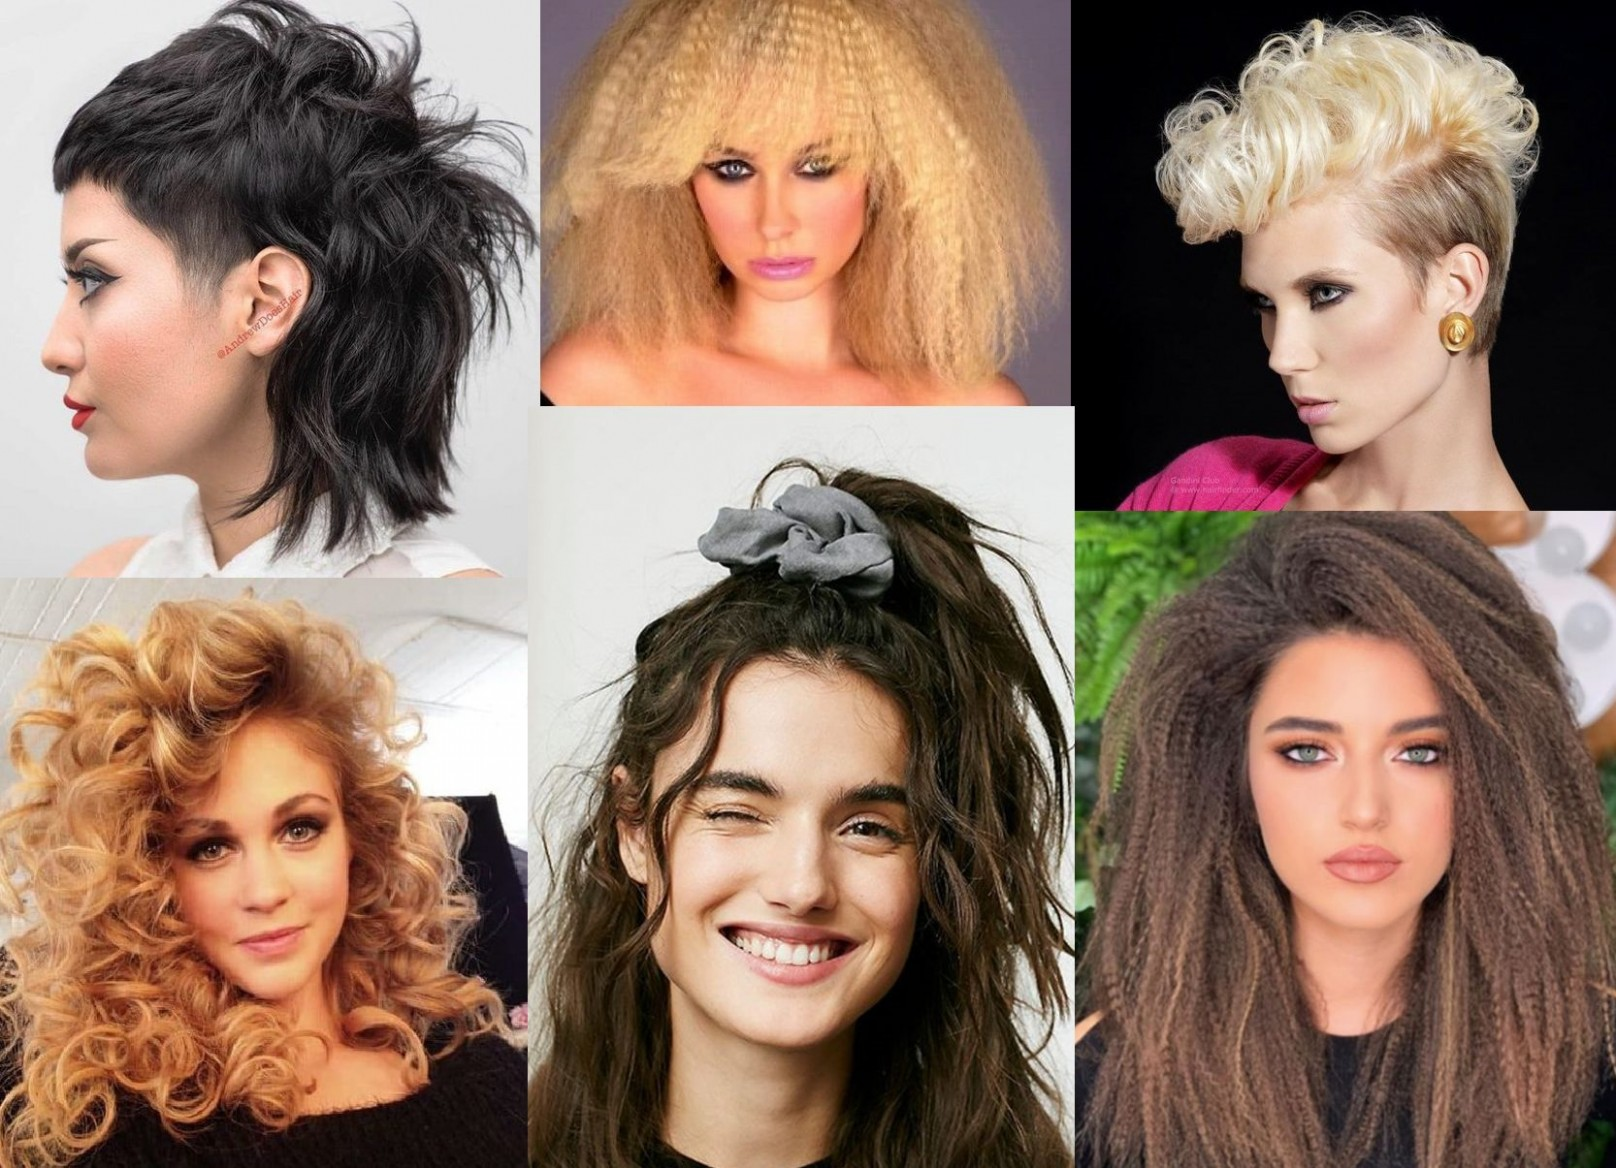 10s Hairstyles - 10 Hairstyles Inspired by the 1910s